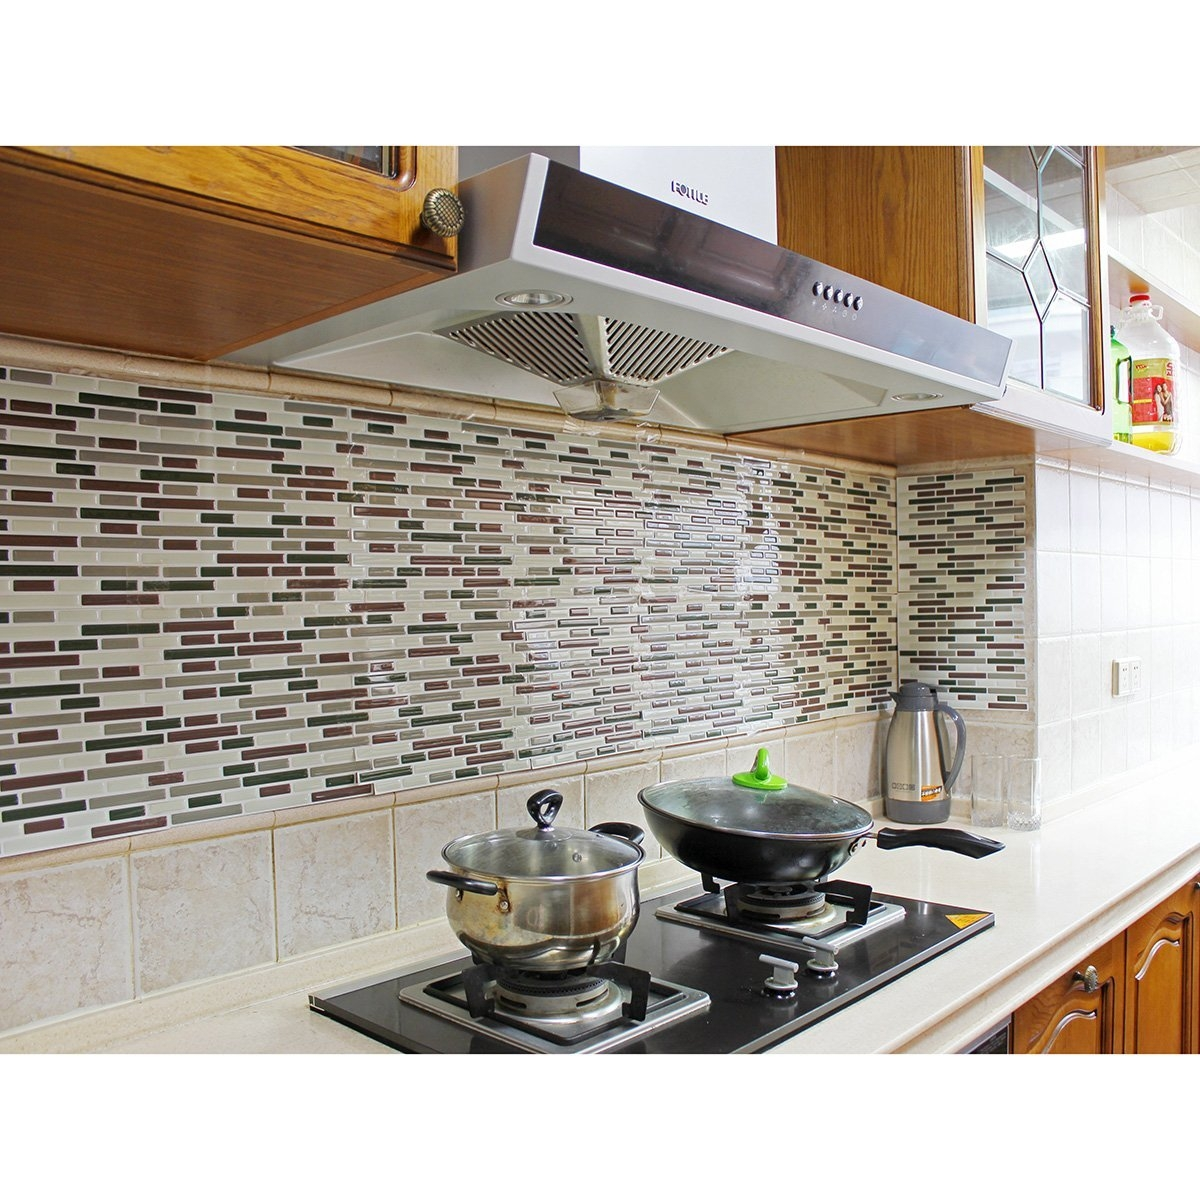 adhesive stickers for kitchen tiles Unique Fancy fix Vinyl Peel and Stick Decorative Backsplash Kitchen Tiles